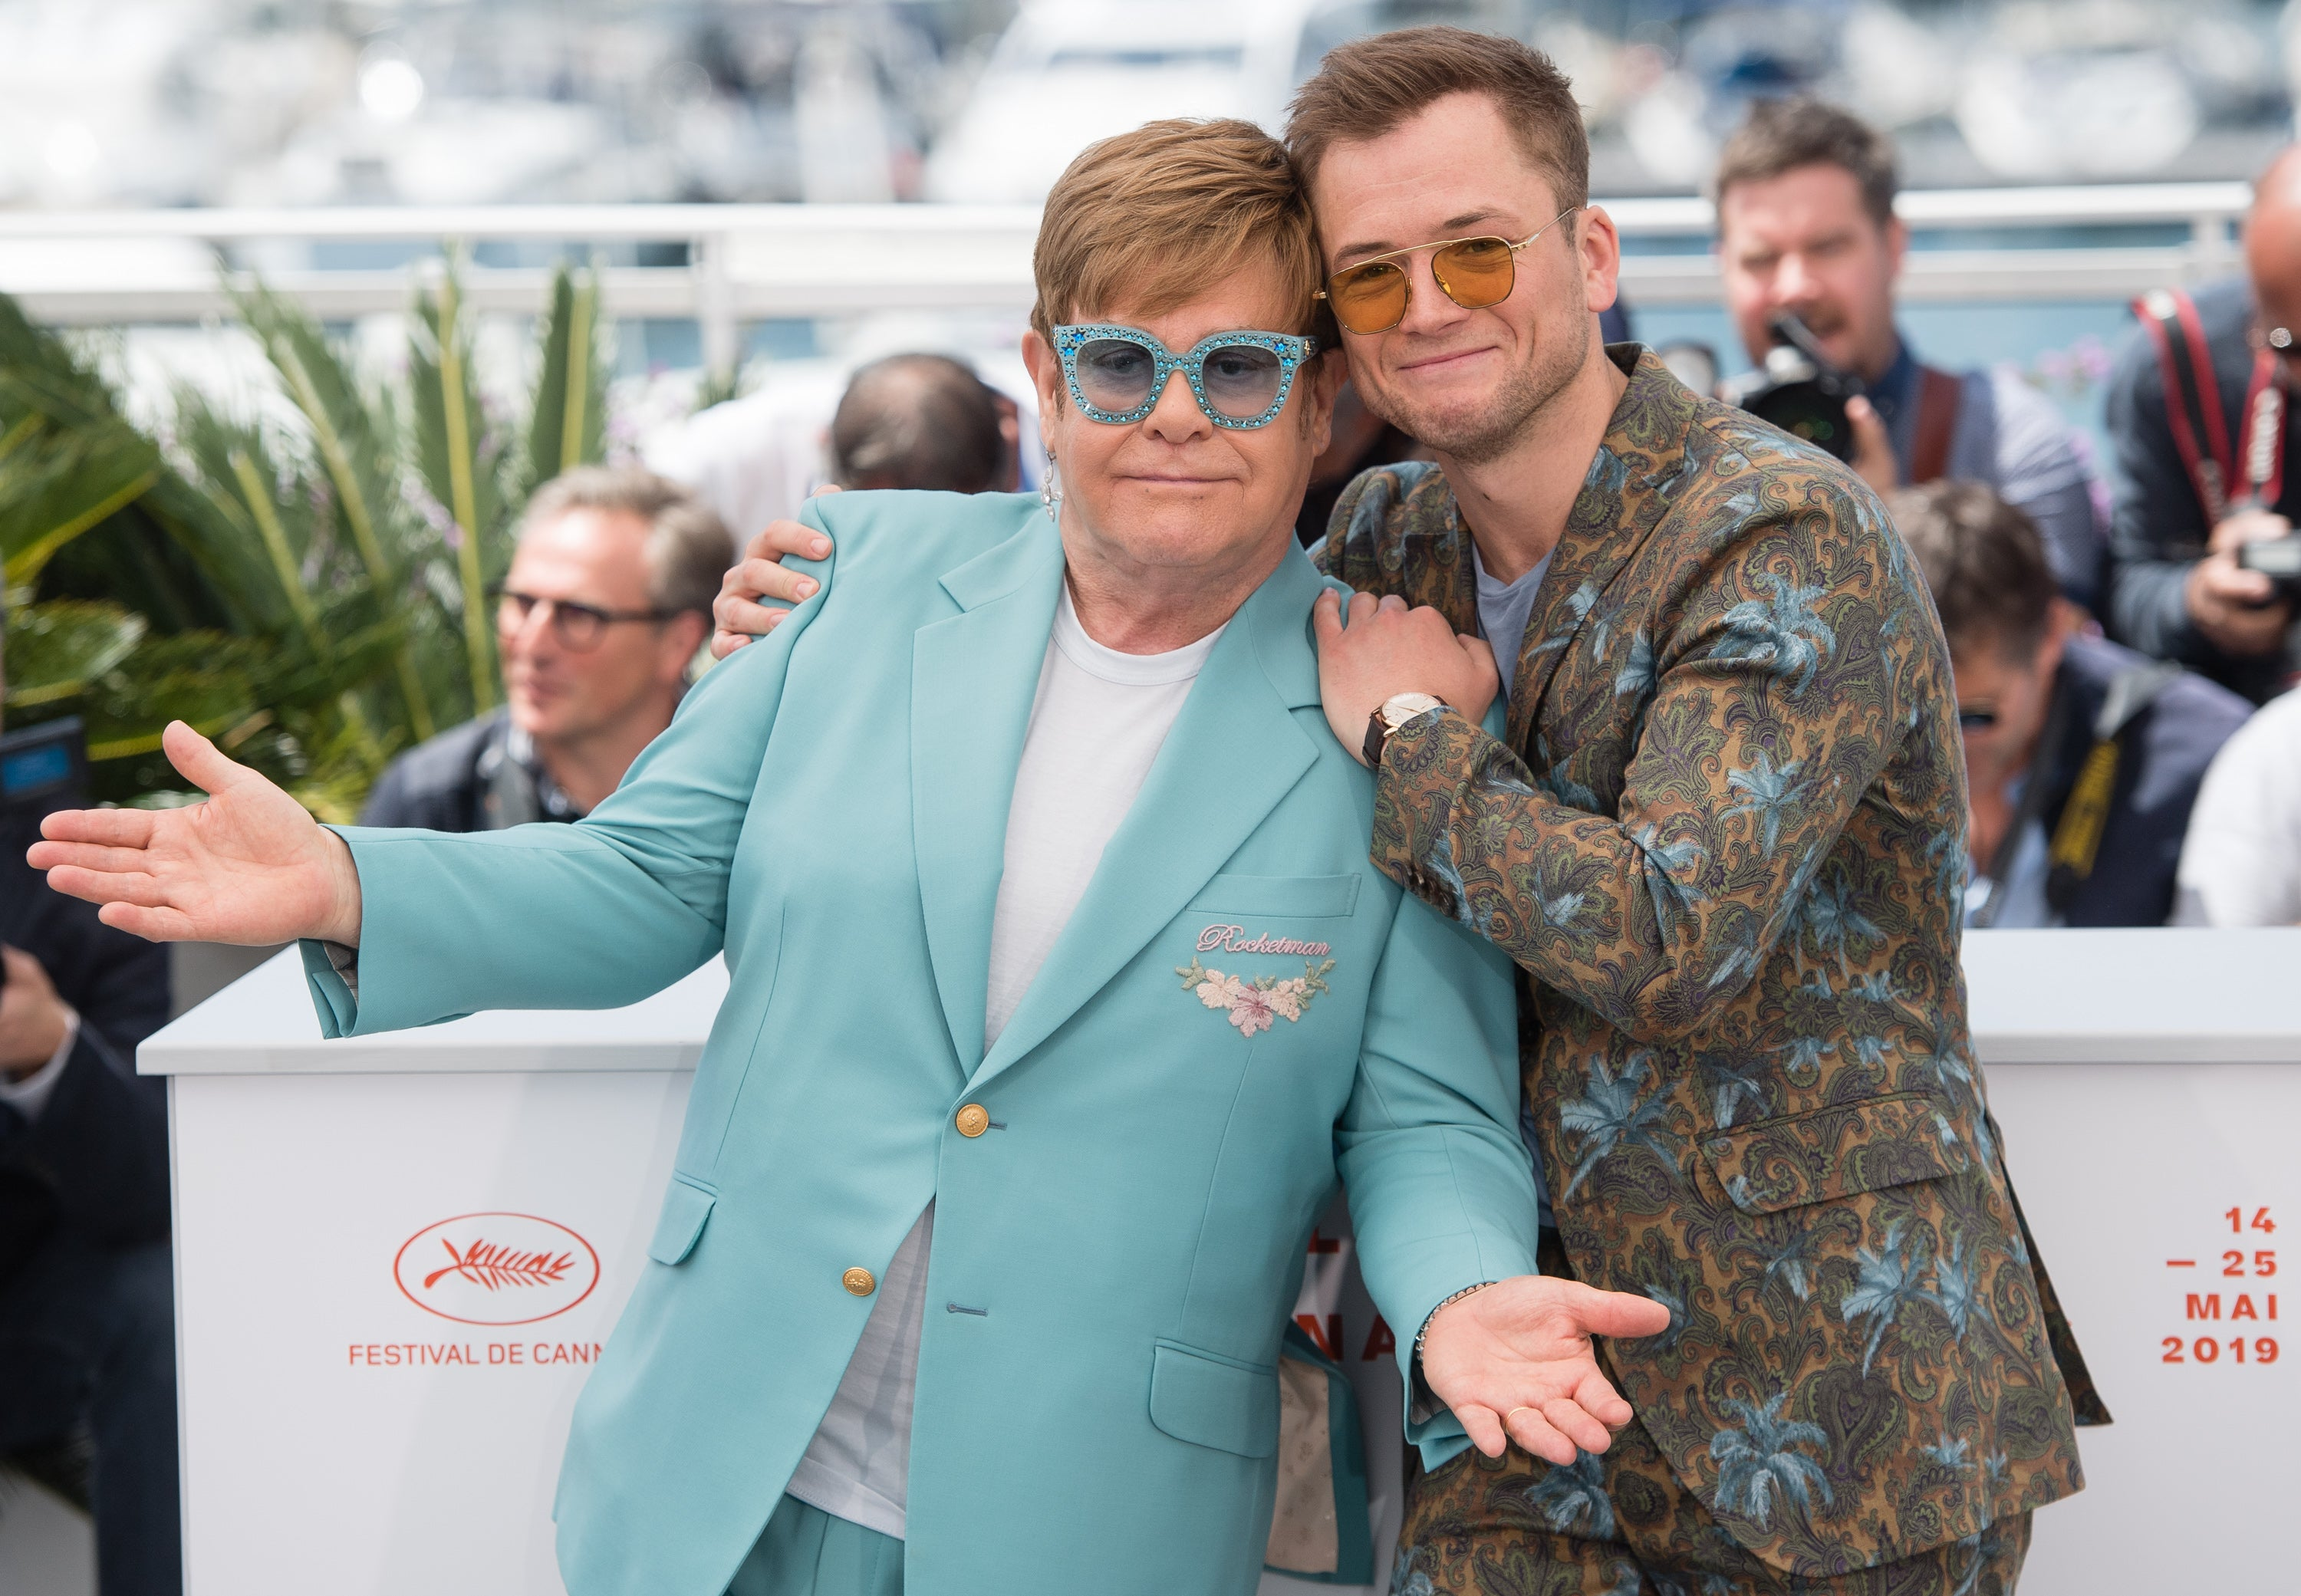 Rockstar Elton John and actor Taron Egerton